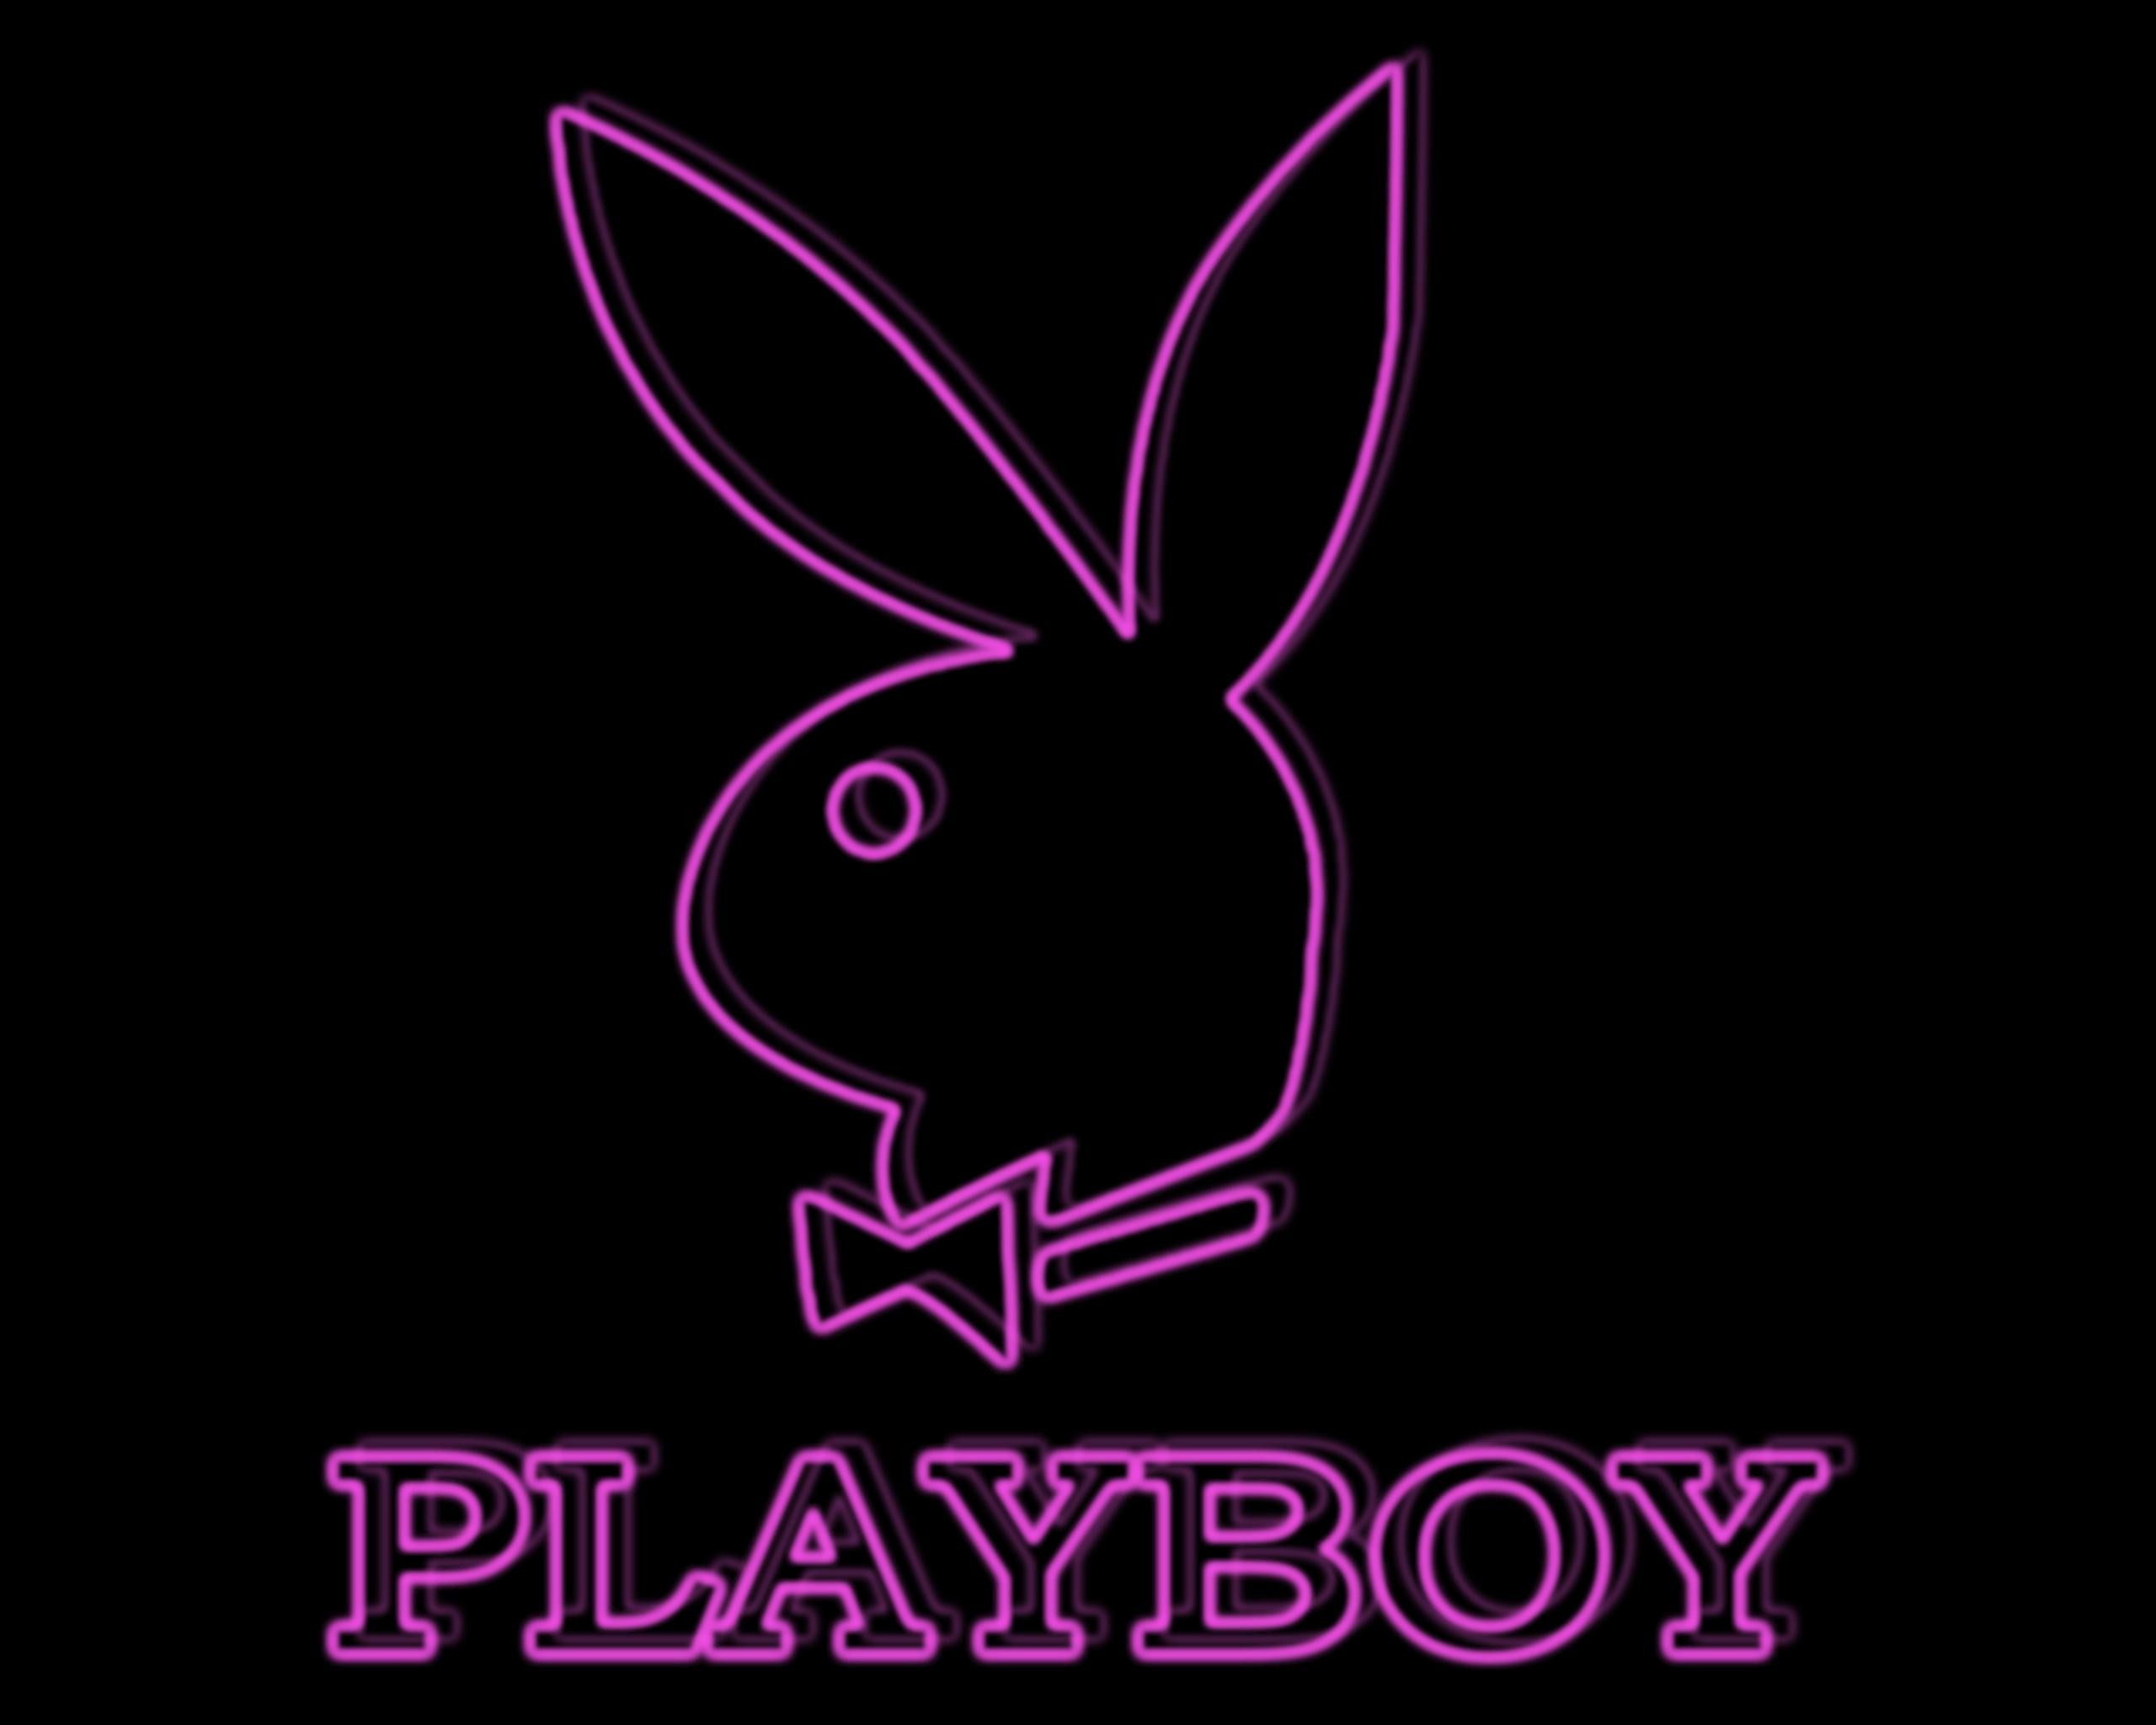 Playboy Backgrounds 64 Images